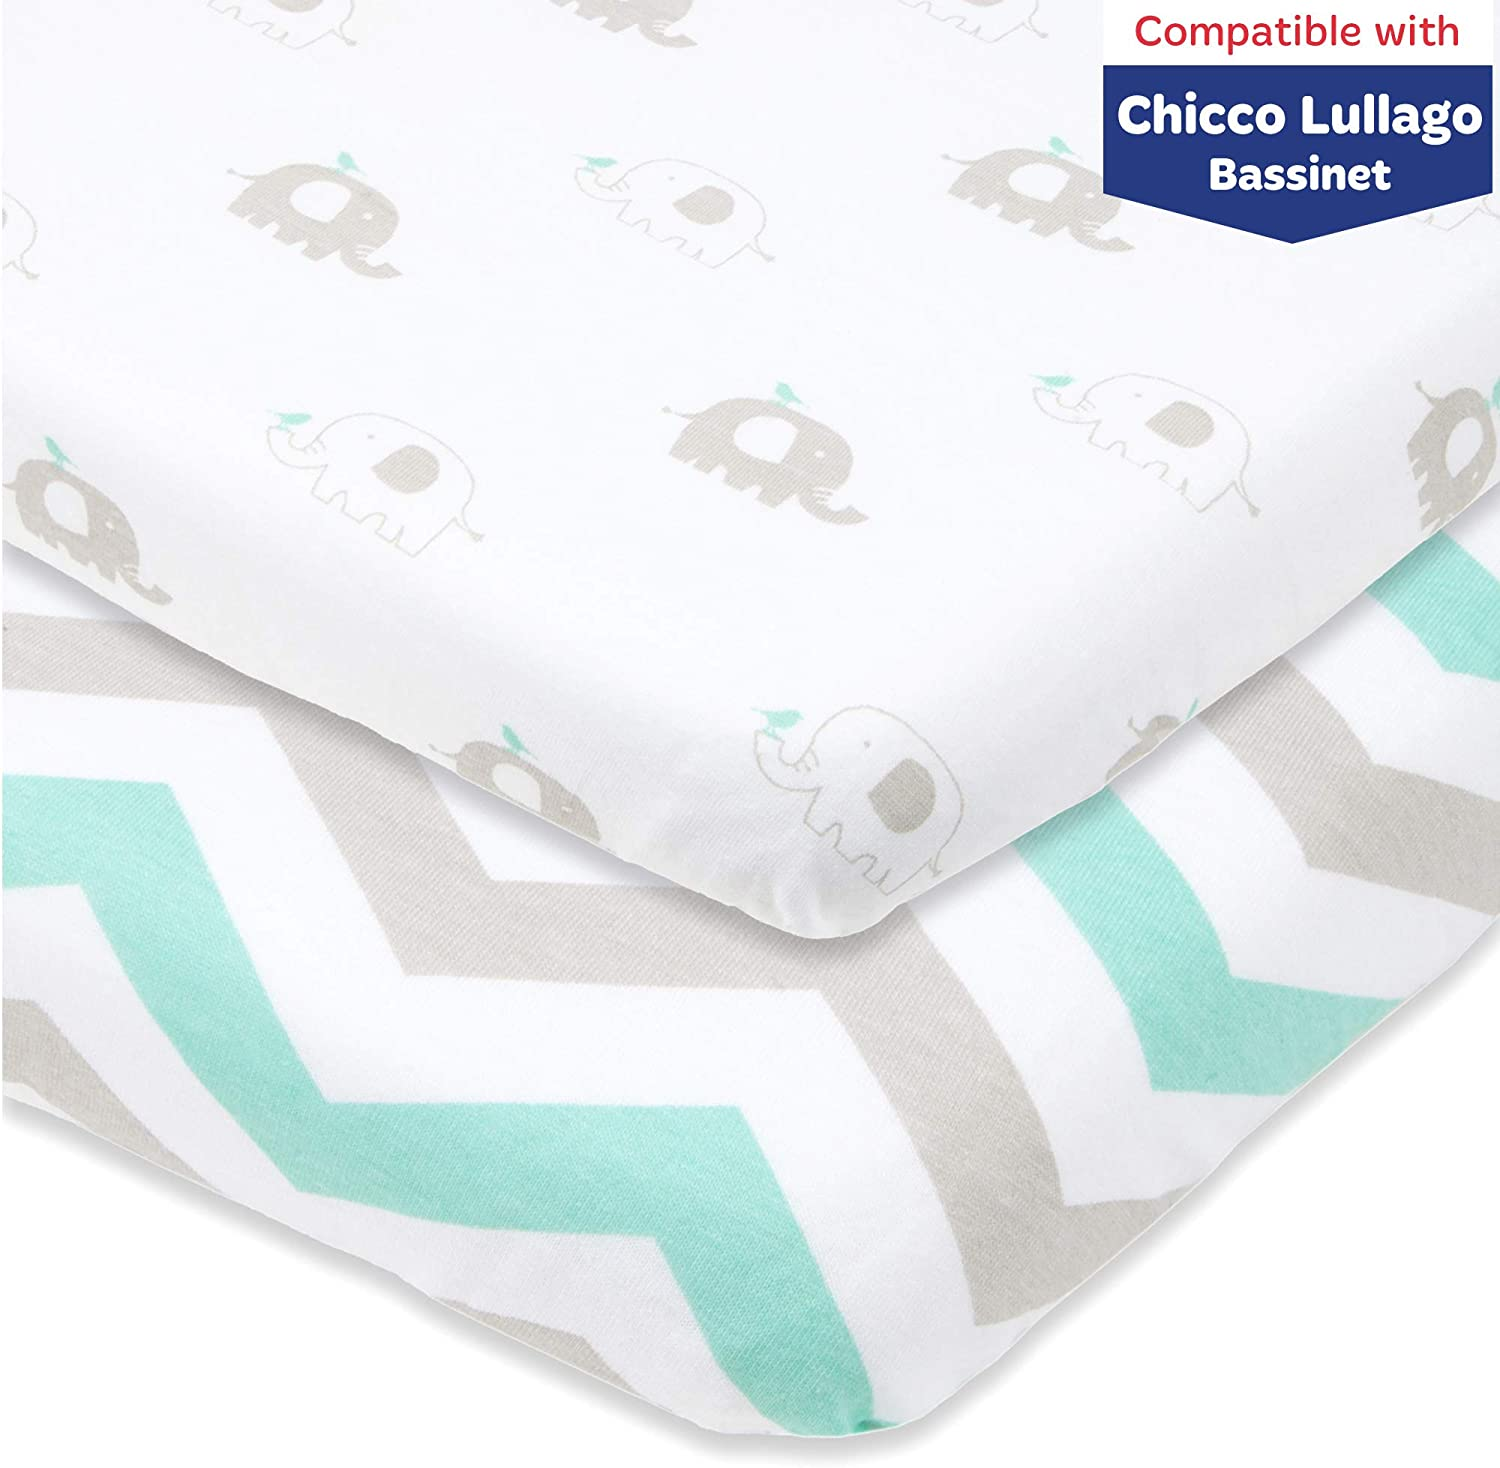 Bassinet Fitted Sheets Compatible with Chicco Lullago Bassinet and Chicco Close to You 3-in-1 Bedside Sleeper – Snuggly Soft Jersey Cotton – Fits Perfectly on 19 x 32 Mattress – Grey, Mint – 2 Pack